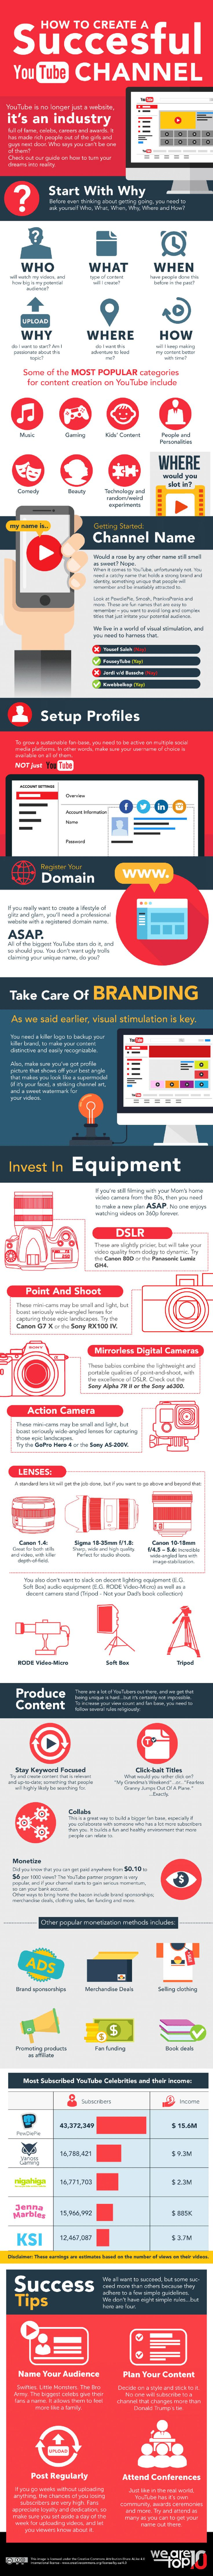 How To Build A Successful YouTube Channel Infographic. Topic: Video, social media